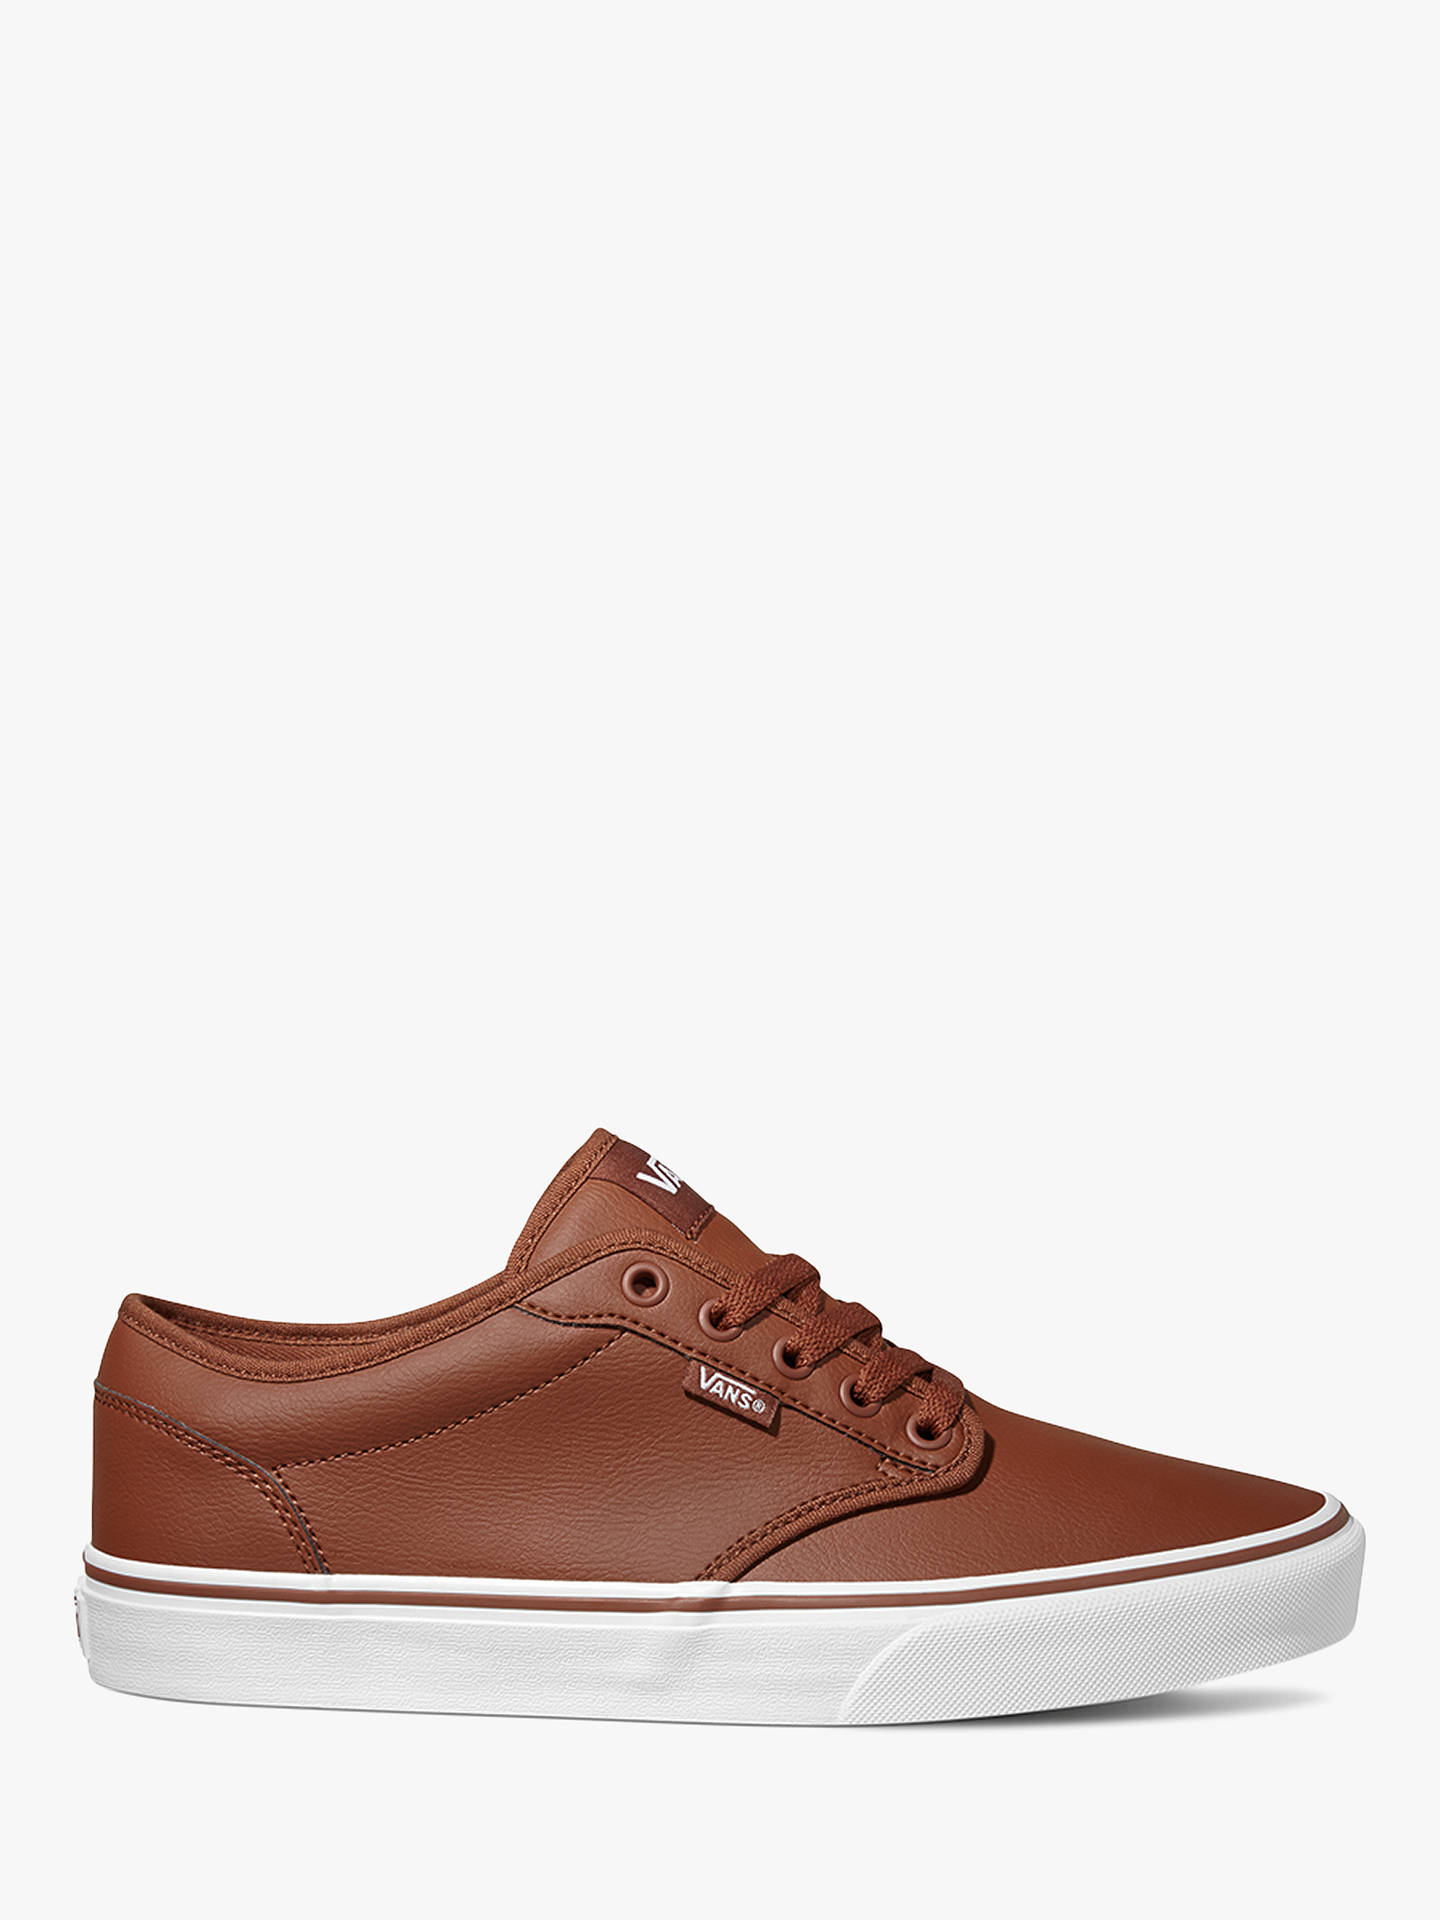 Vans Atwood Leather Trainers at John Lewis   Partners 04596ad38